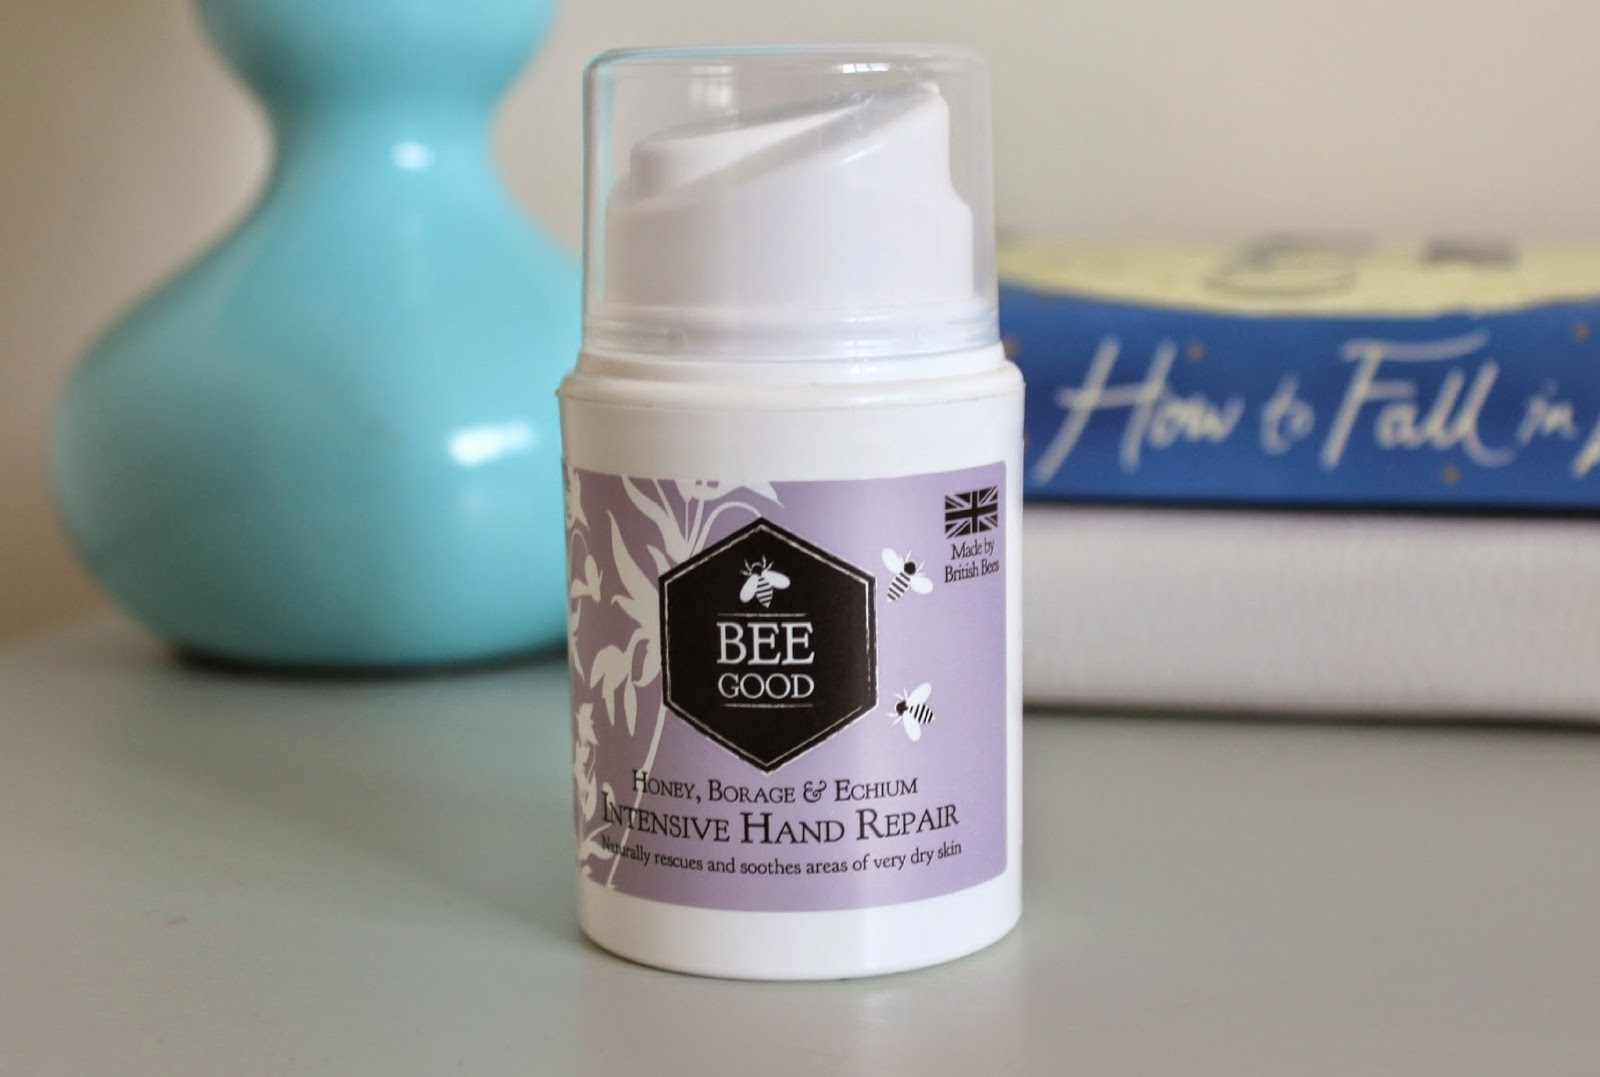 Bee Good Intensive Hand Repair with Honey, Borage & Echium